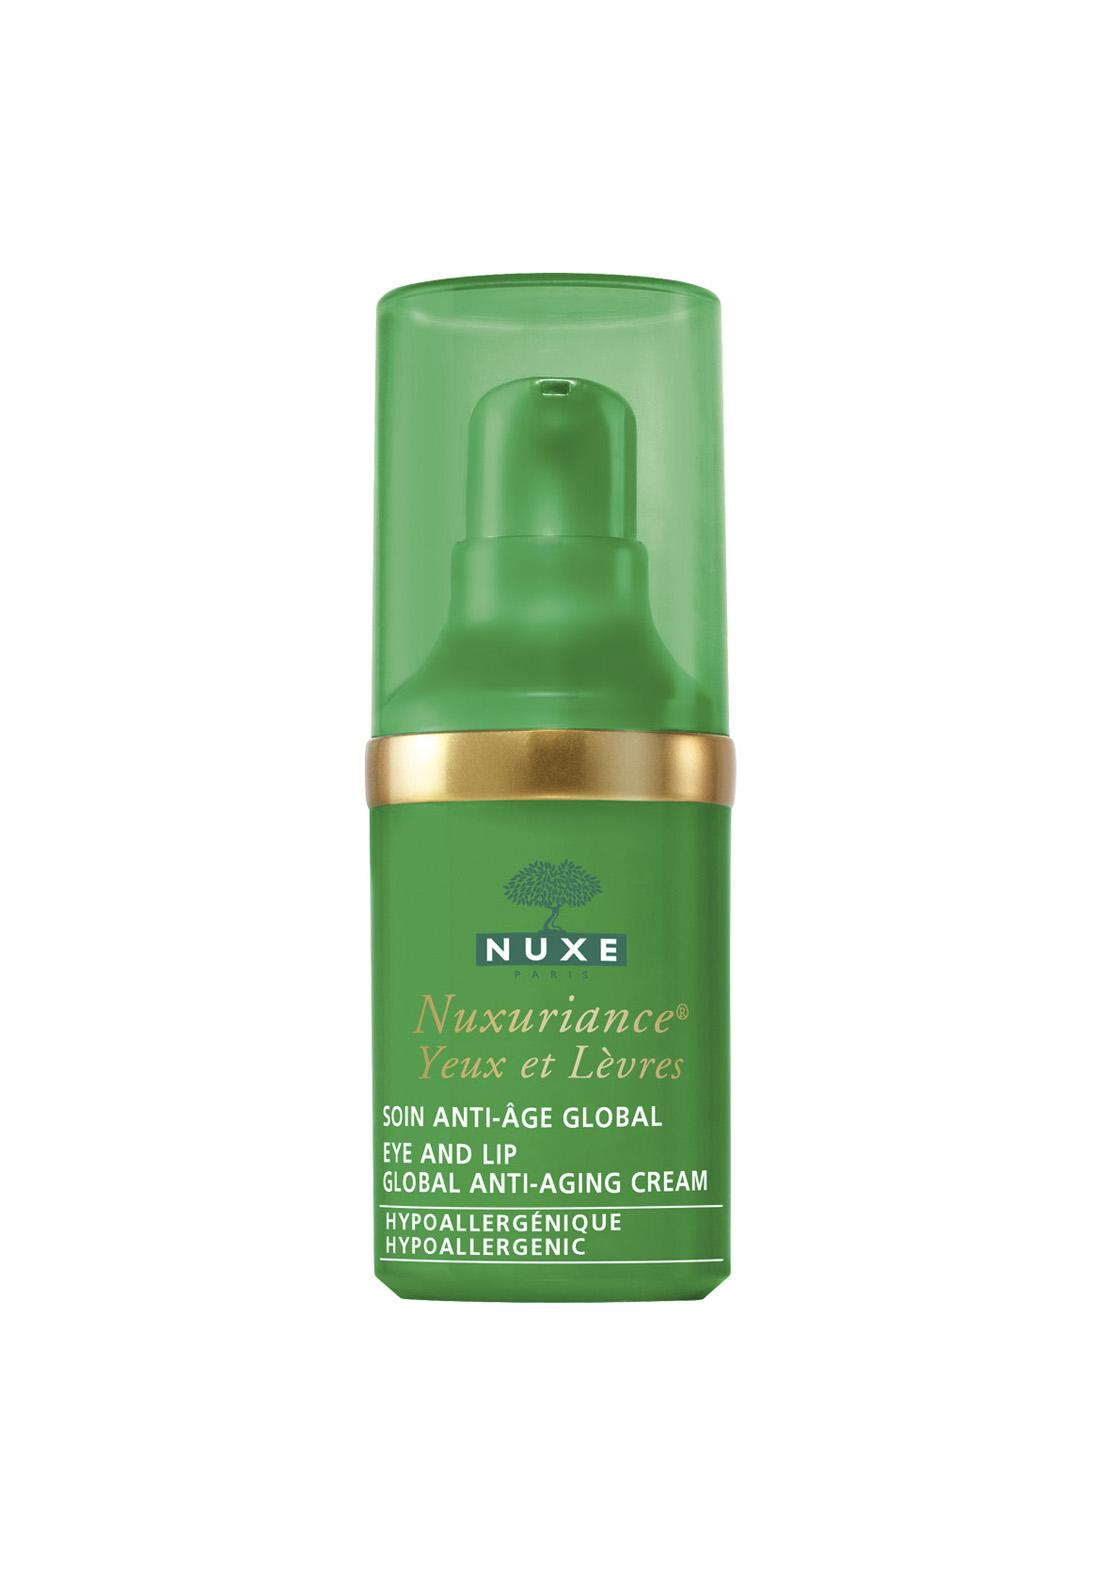 Nuxe Paris Nuxuriance Yeux et Levres Eye and Lip Global Anti Aging Cream